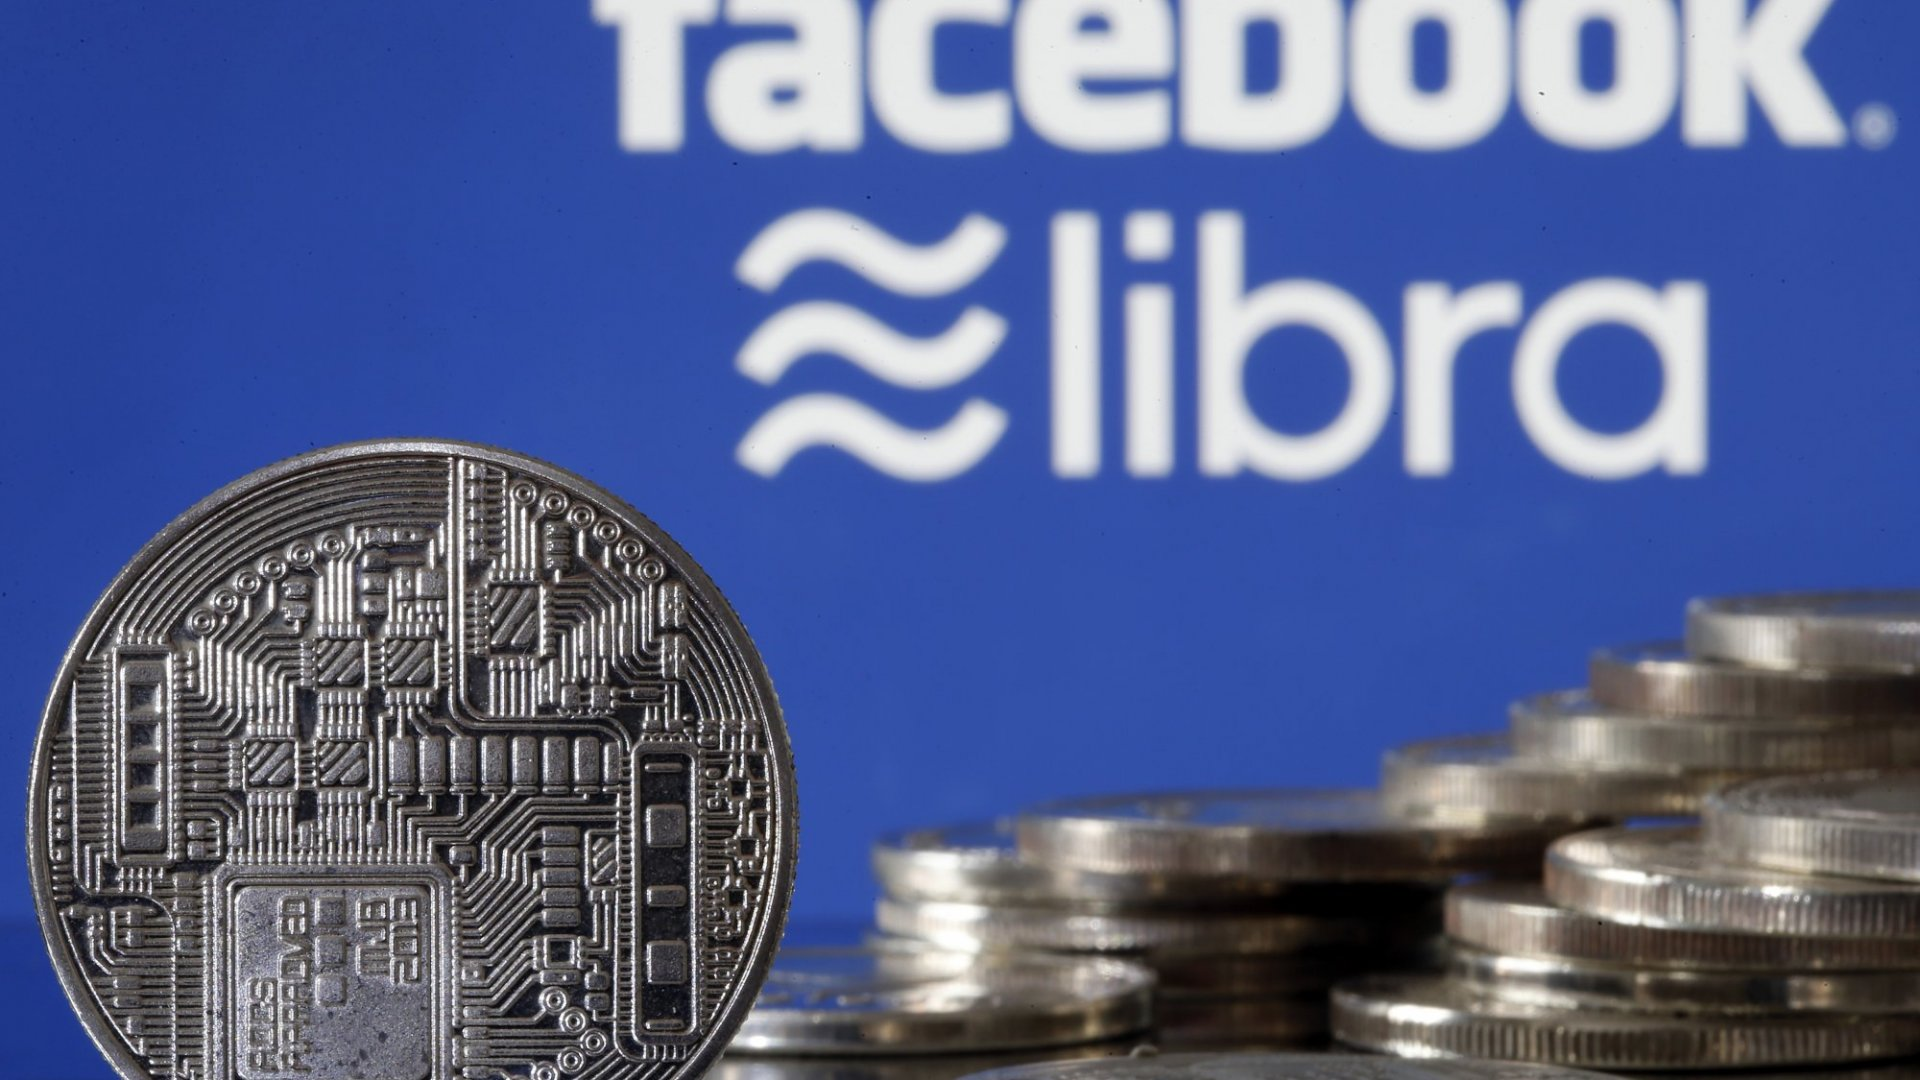 Facebook's Libra is Under Intense Scrutiny From Congress, President Trump, and More. Here Are Their Concerns With the Digital Currency